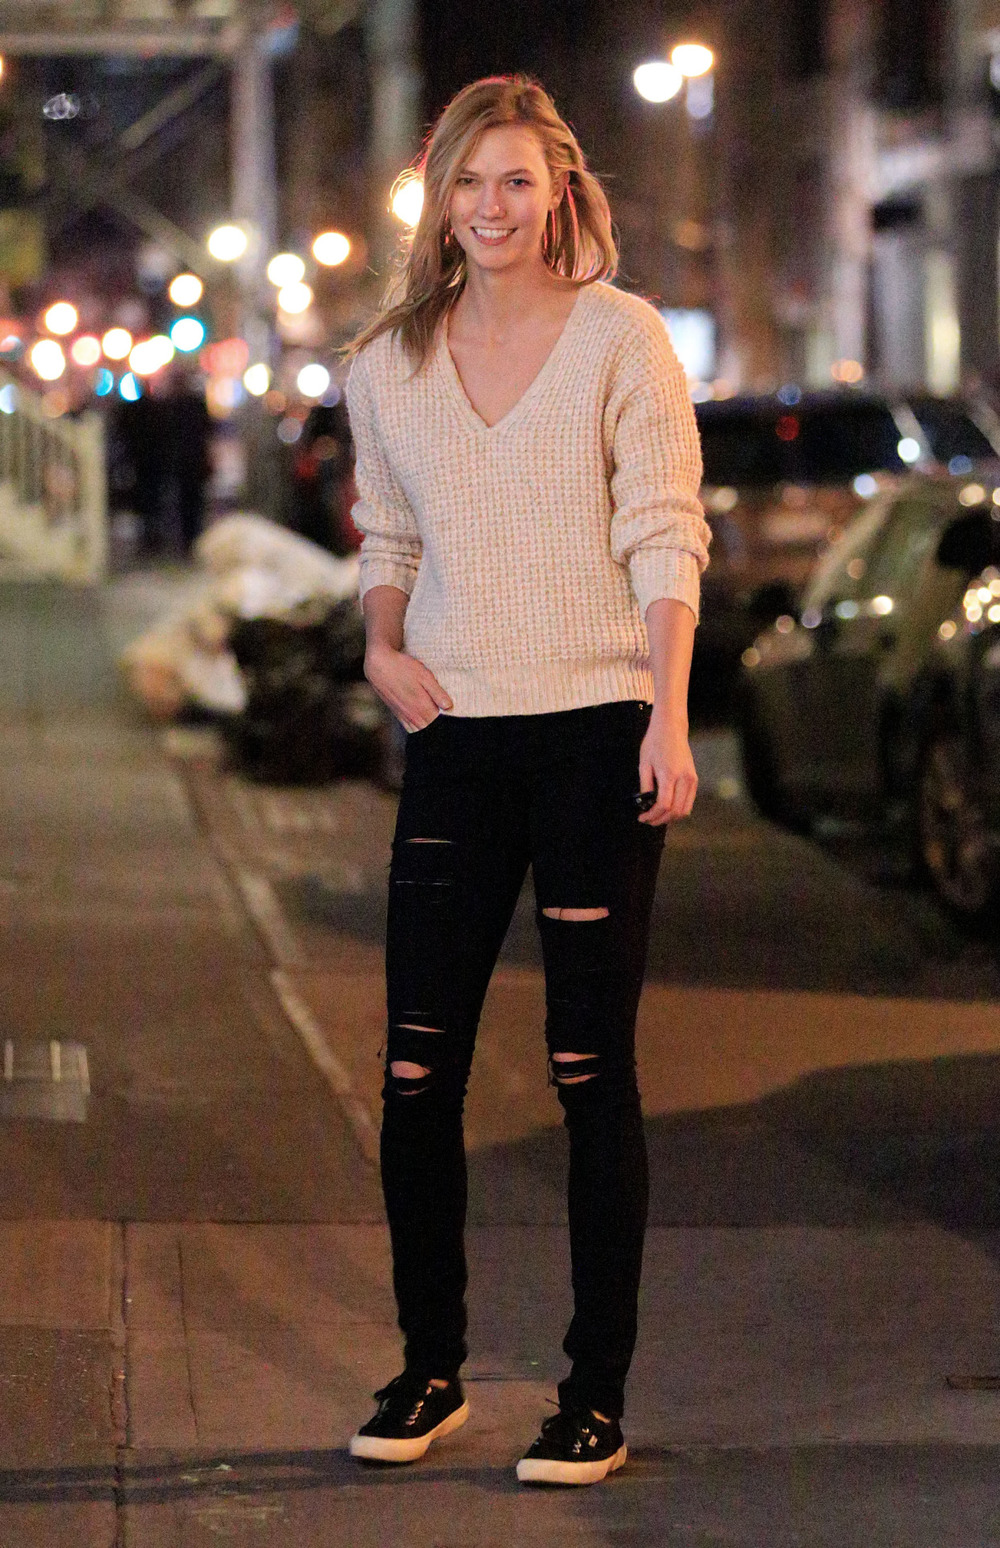 Karlie Kloss stepped out in NYC wearing Superga Cotu Classics, Frame Denim Le Color Jeans in Film Noir and a Wilfred For Aritzia Baudin Sweater in Bone.